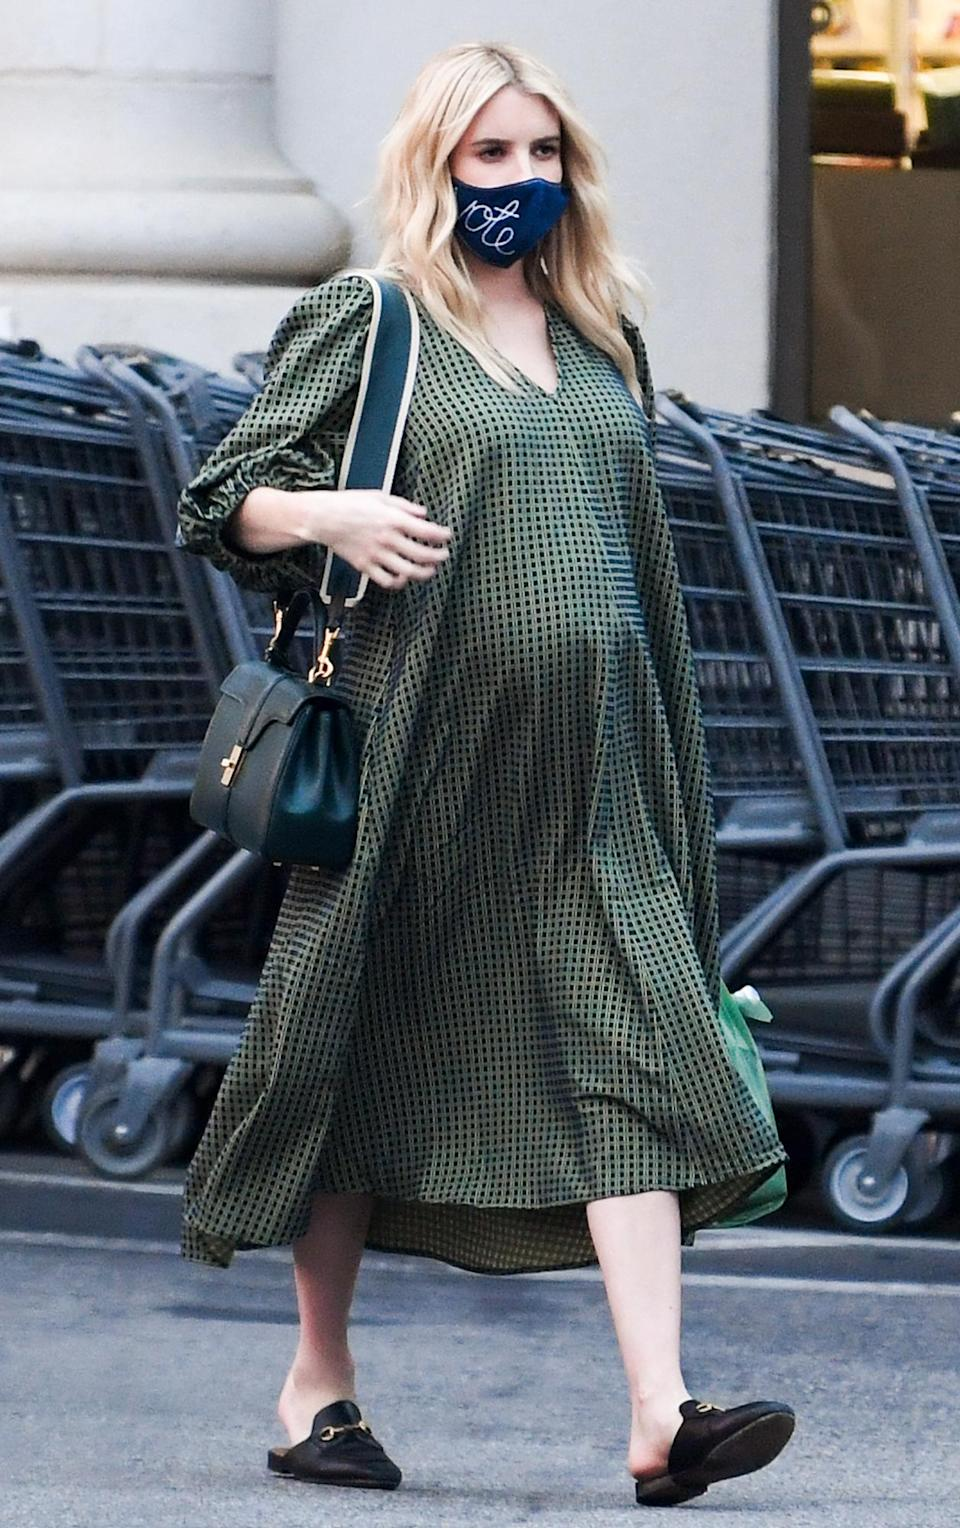 "<p>Emma Roberts is seen in L.A. on Thursday going grocery shopping, wearing a checkered silk dress and a ""vote"" embroidered face mask.</p>"